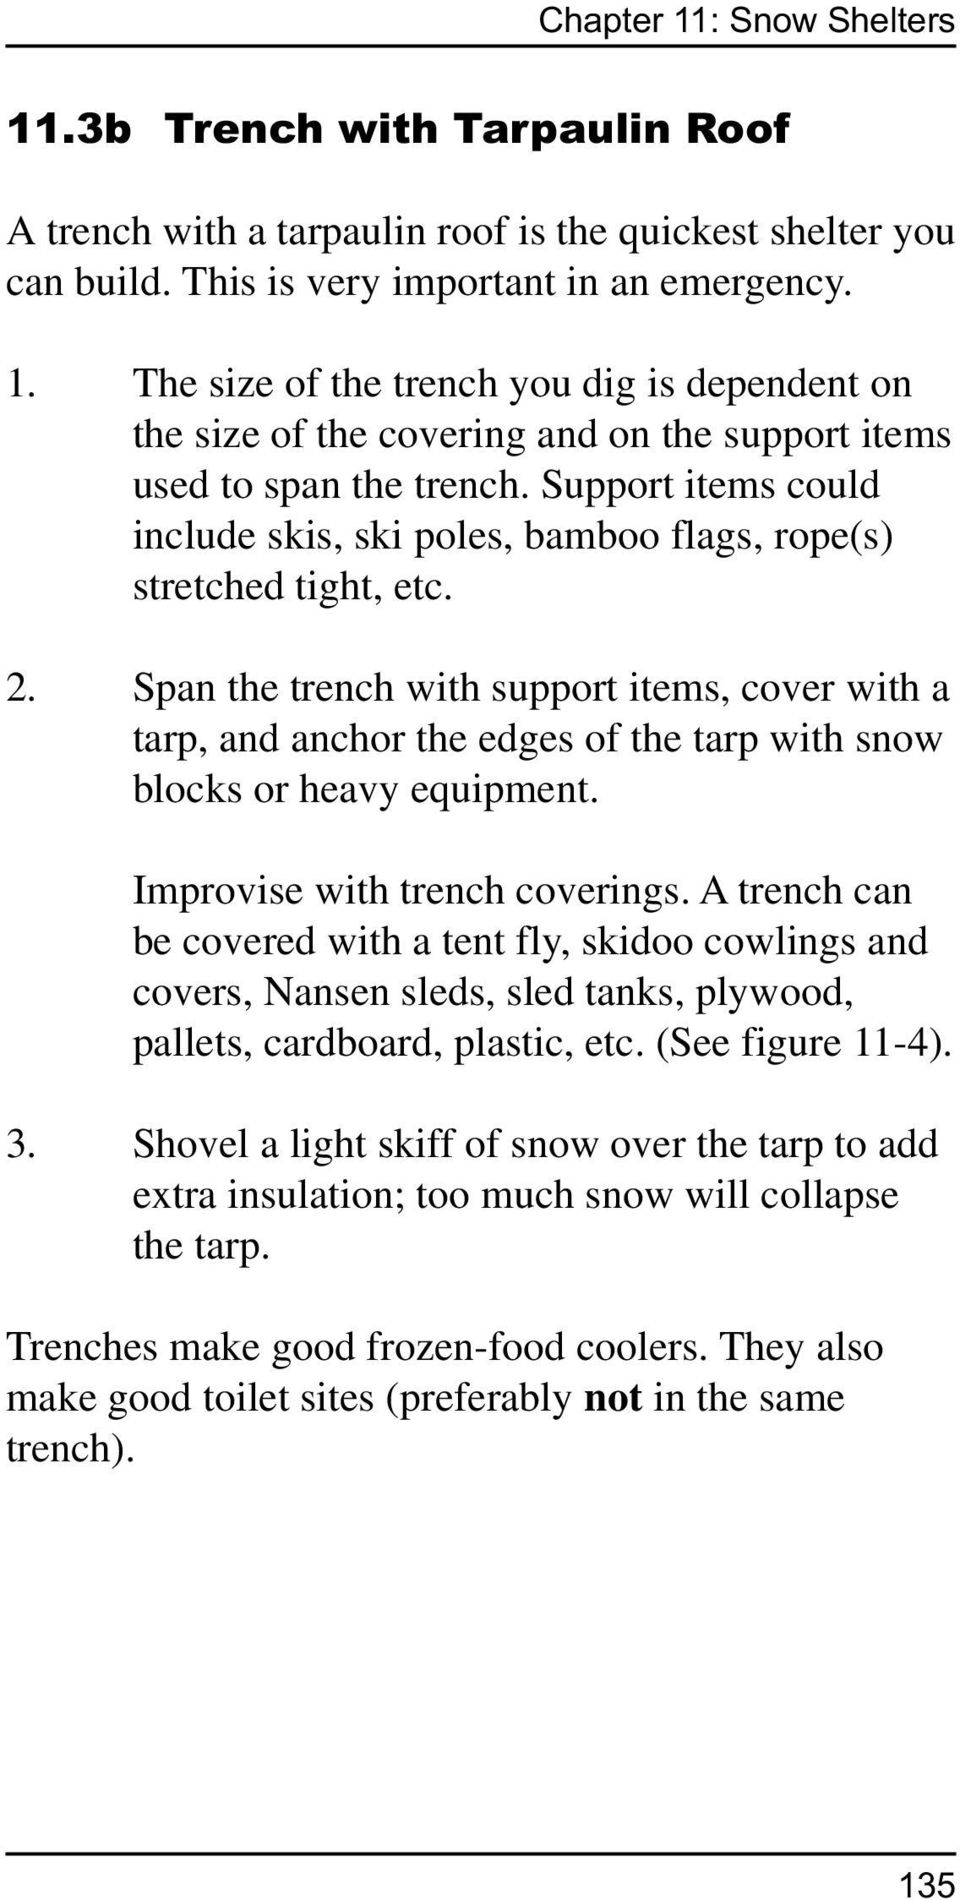 Span the trench with support items, cover with a tarp, and anchor the edges of the tarp with snow blocks or heavy equipment. Improvise with trench coverings.